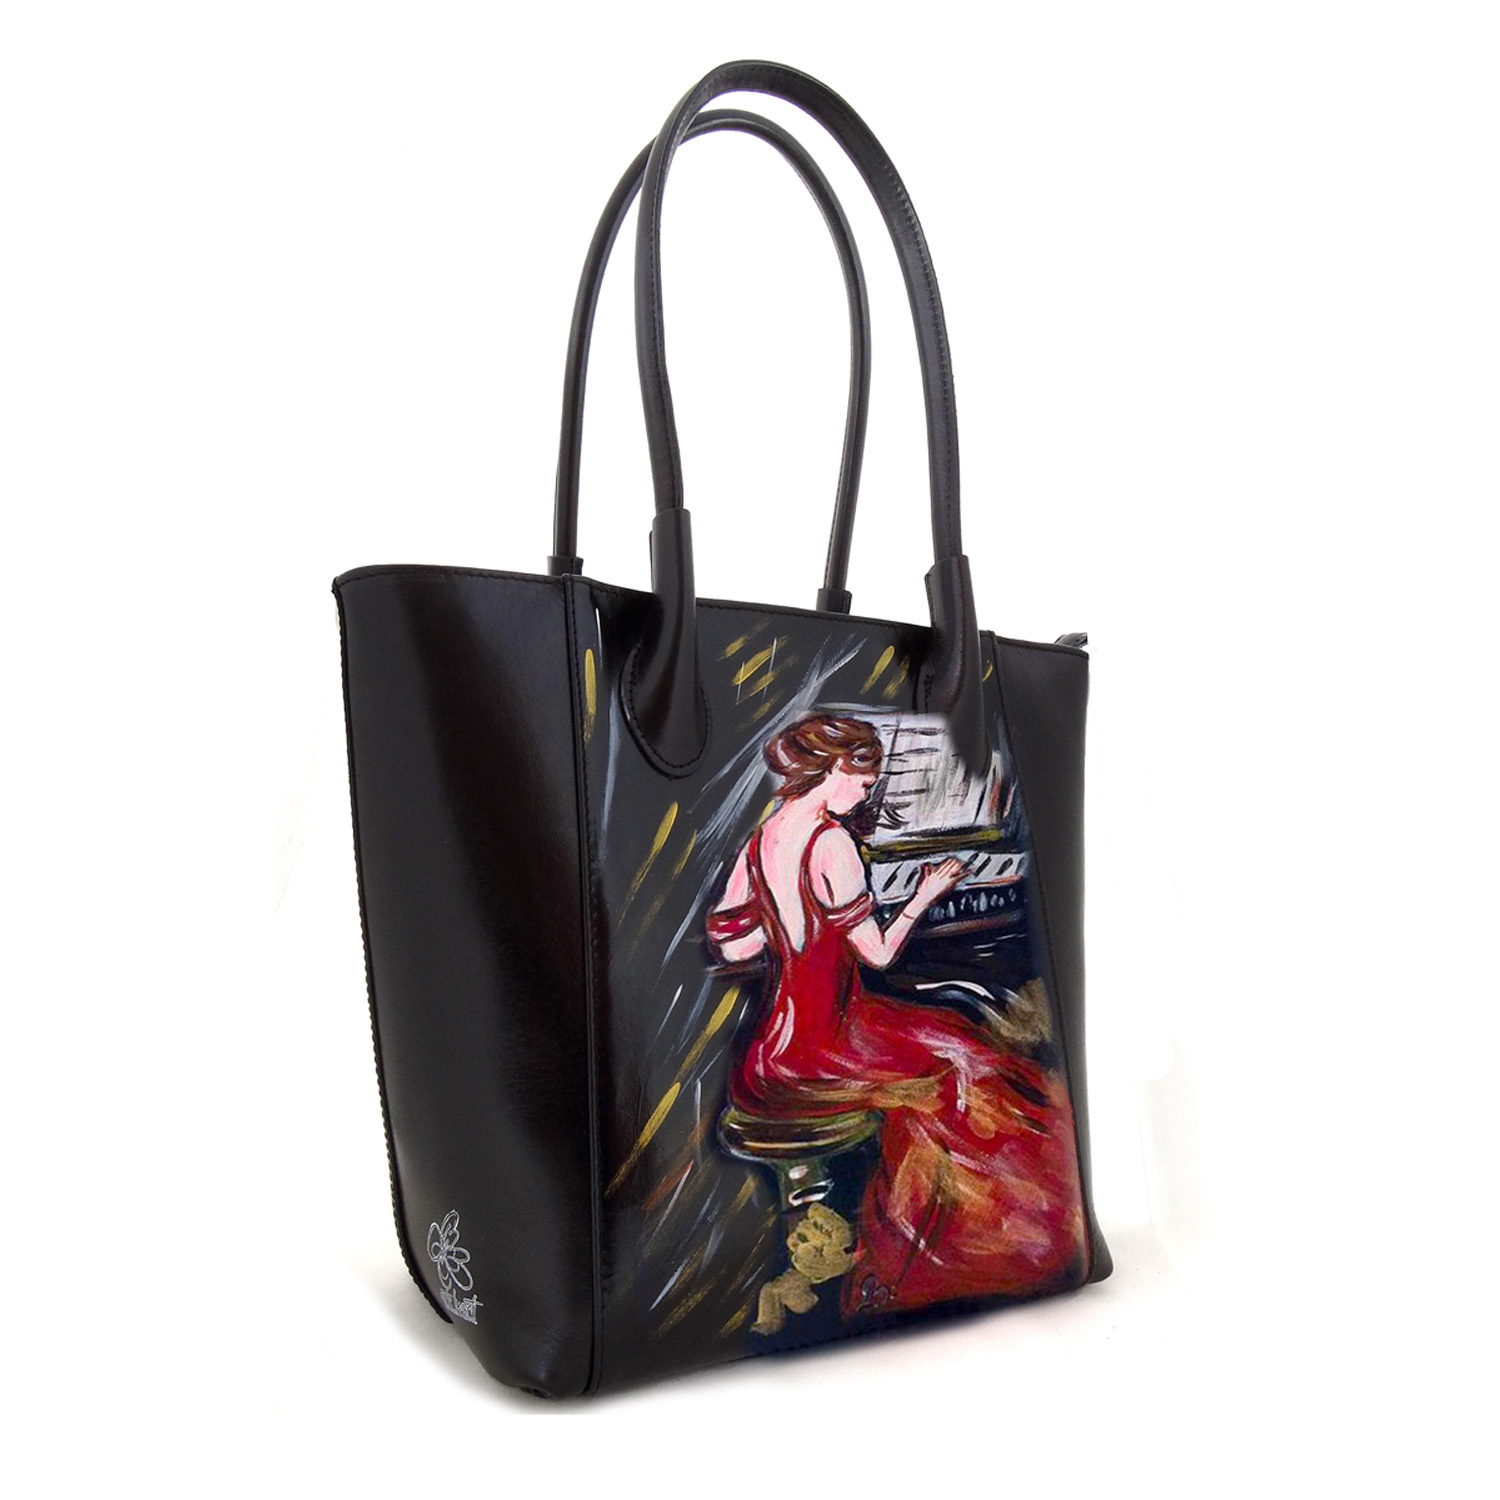 Hand-painted bag - Woman in Red by Boldini